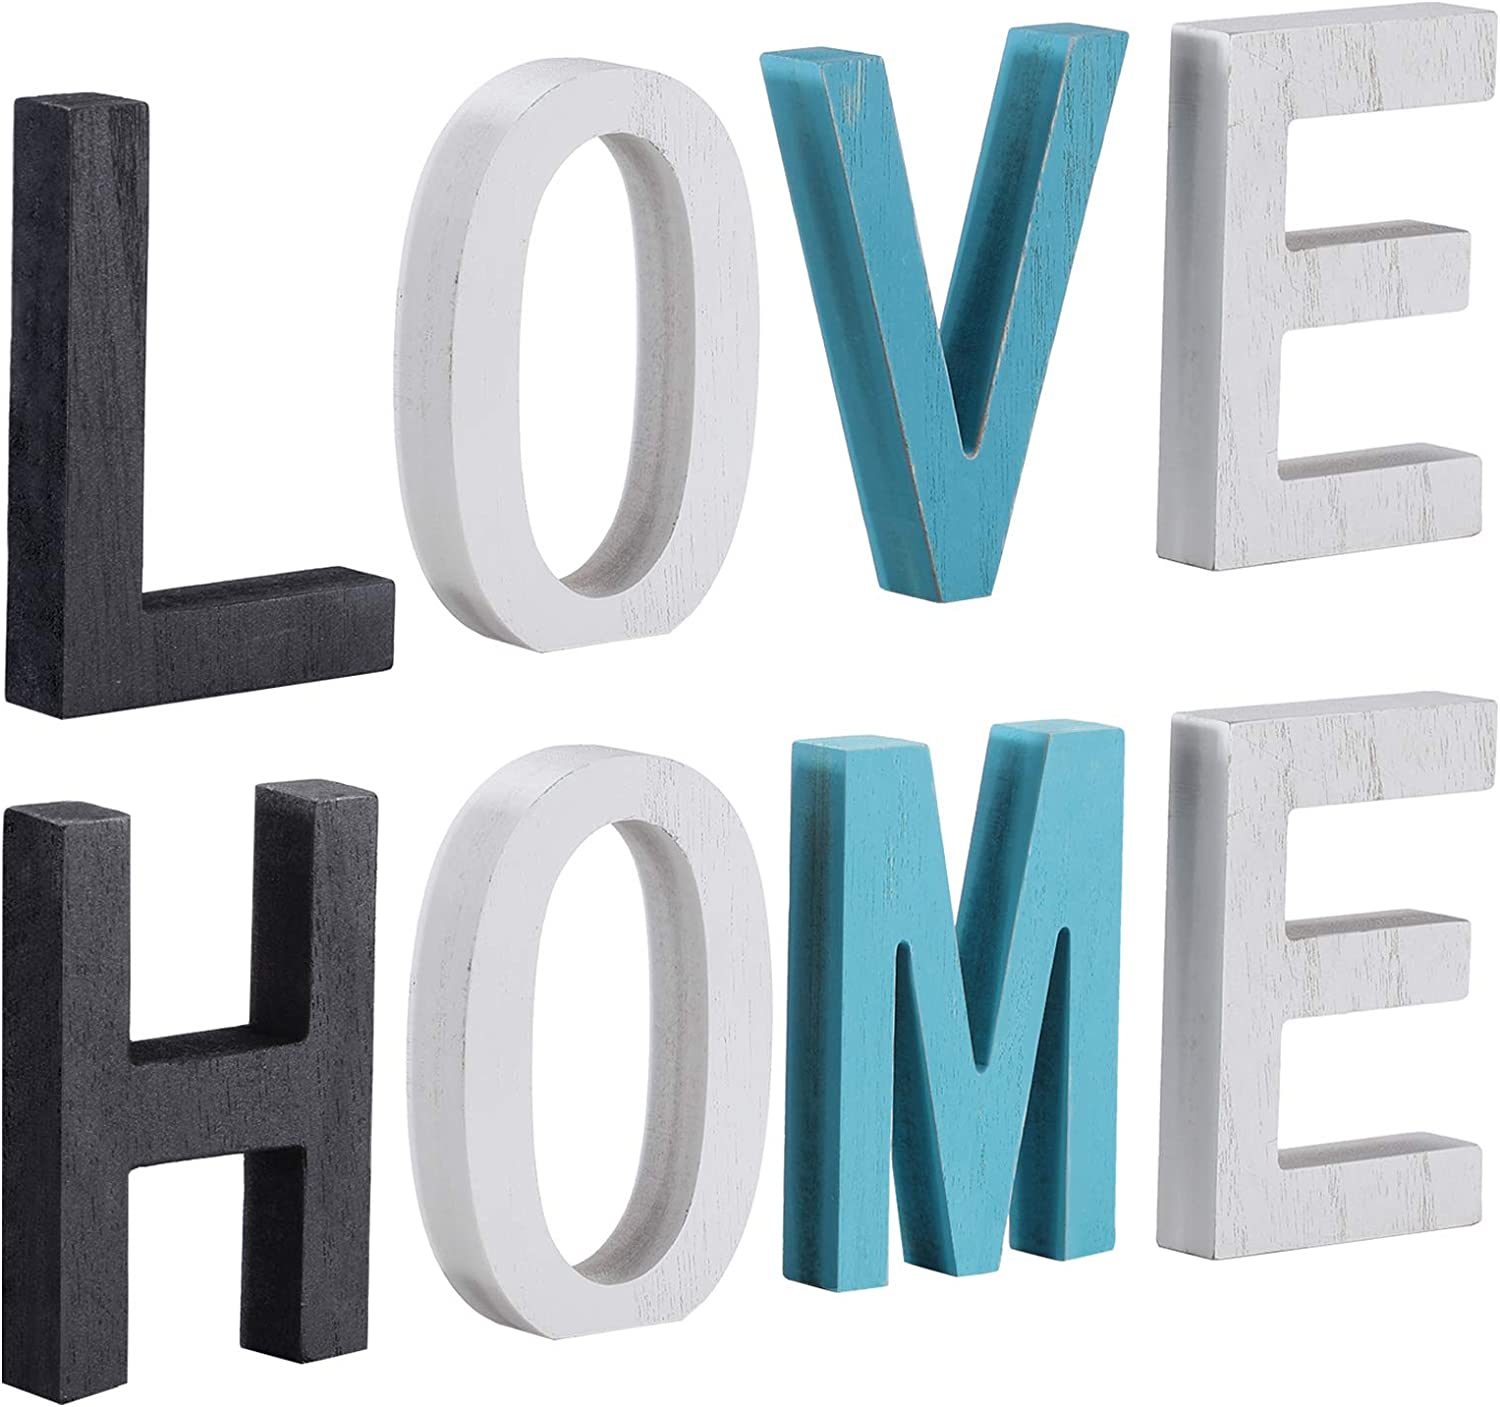 Wood Home Signs Rustic Wood Love Sign Freestanding Wooden Letters Cutout Word Table Multicolor Decor Centerpiece for Home Table Fireplace Mantel Decor